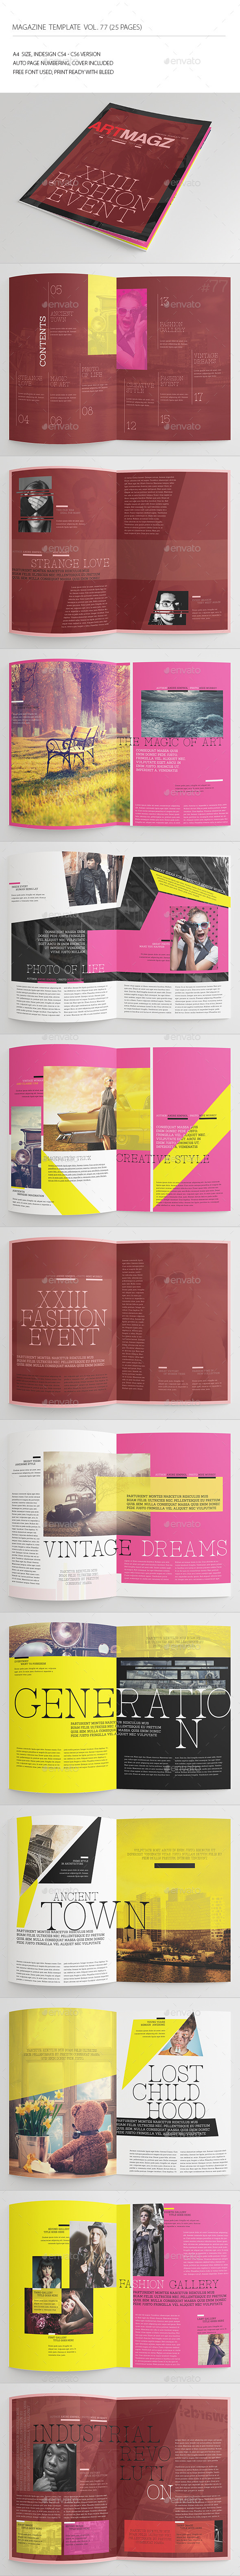 25 Pages Creative Magazine Vol77 - Magazines Print Templates